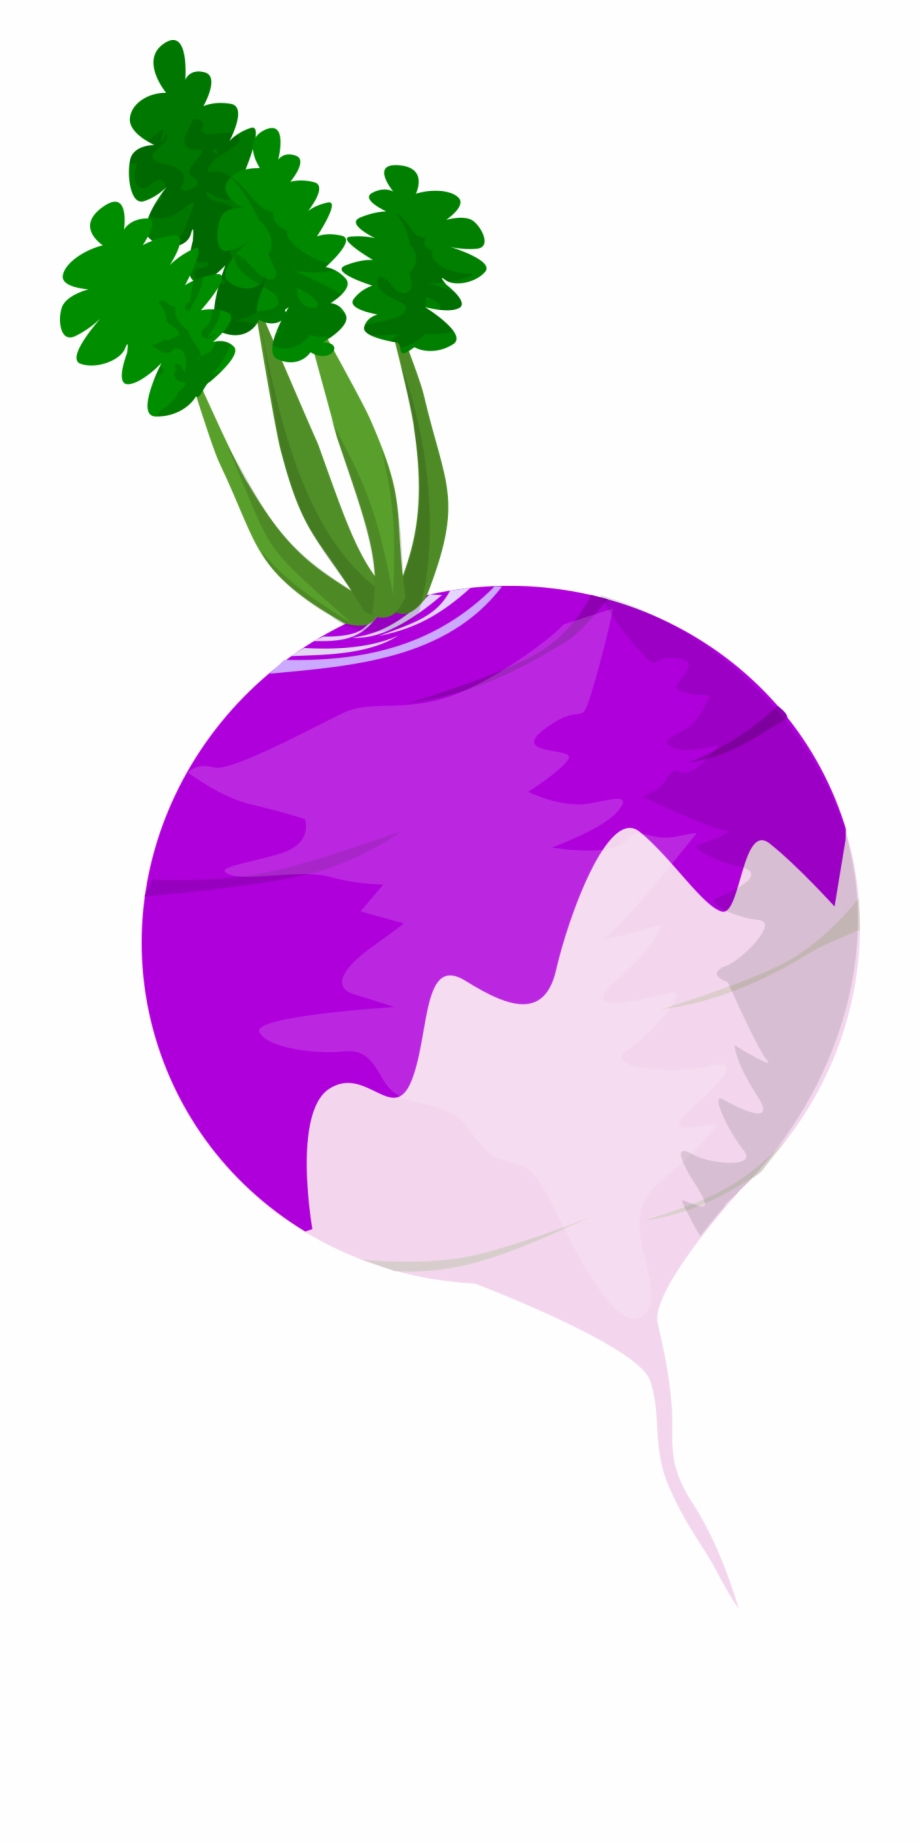 Vegetables Clipart Turnip.